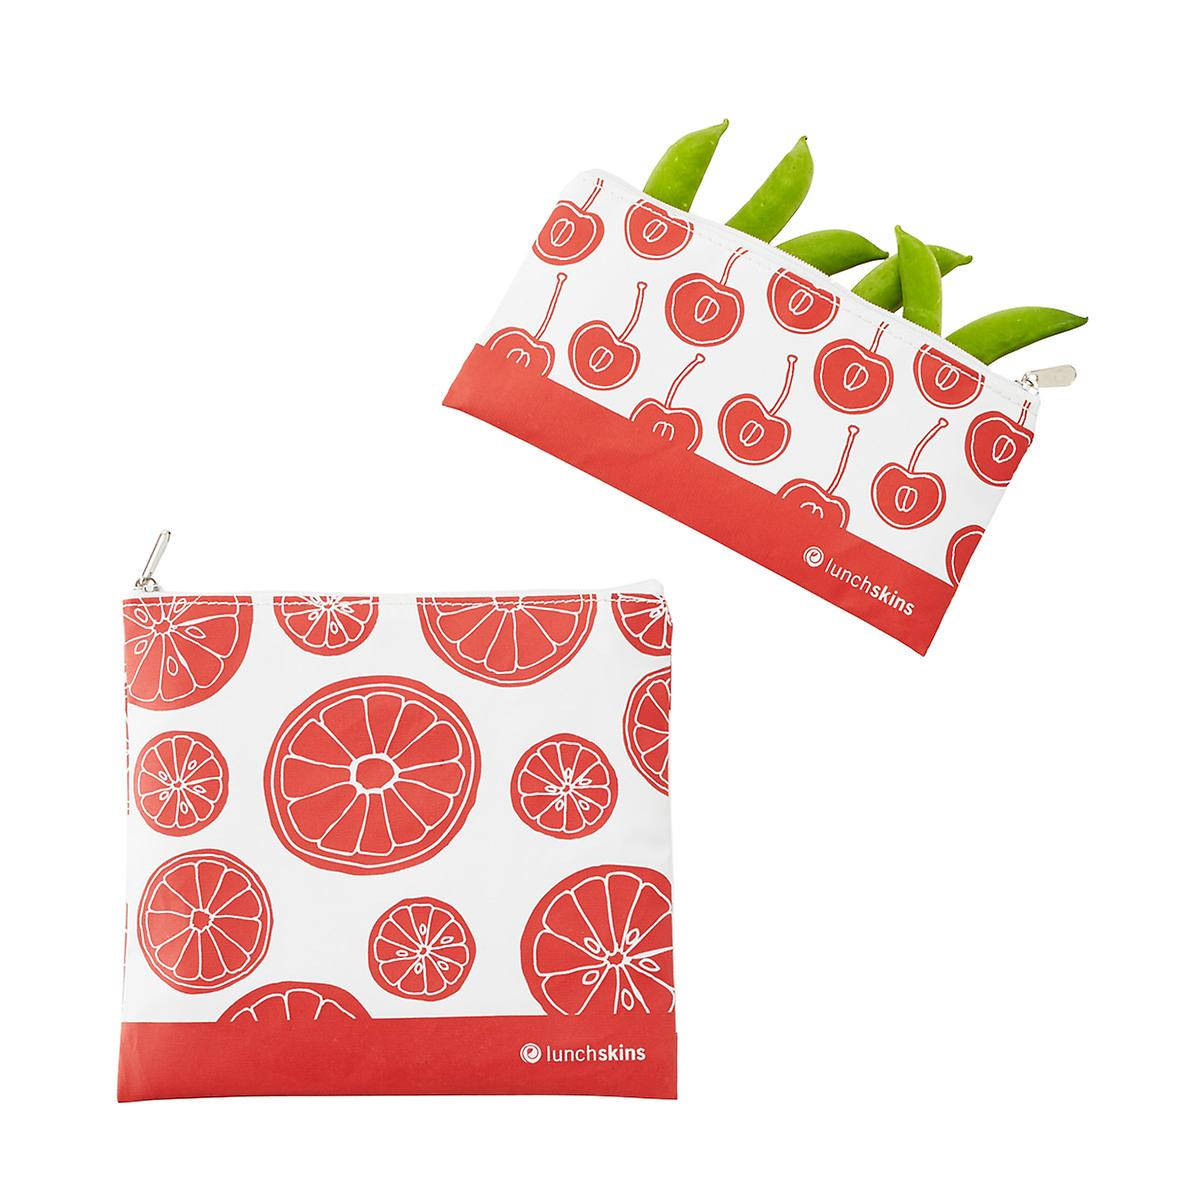 lunchskins Red Fruit Zippered Bag Set